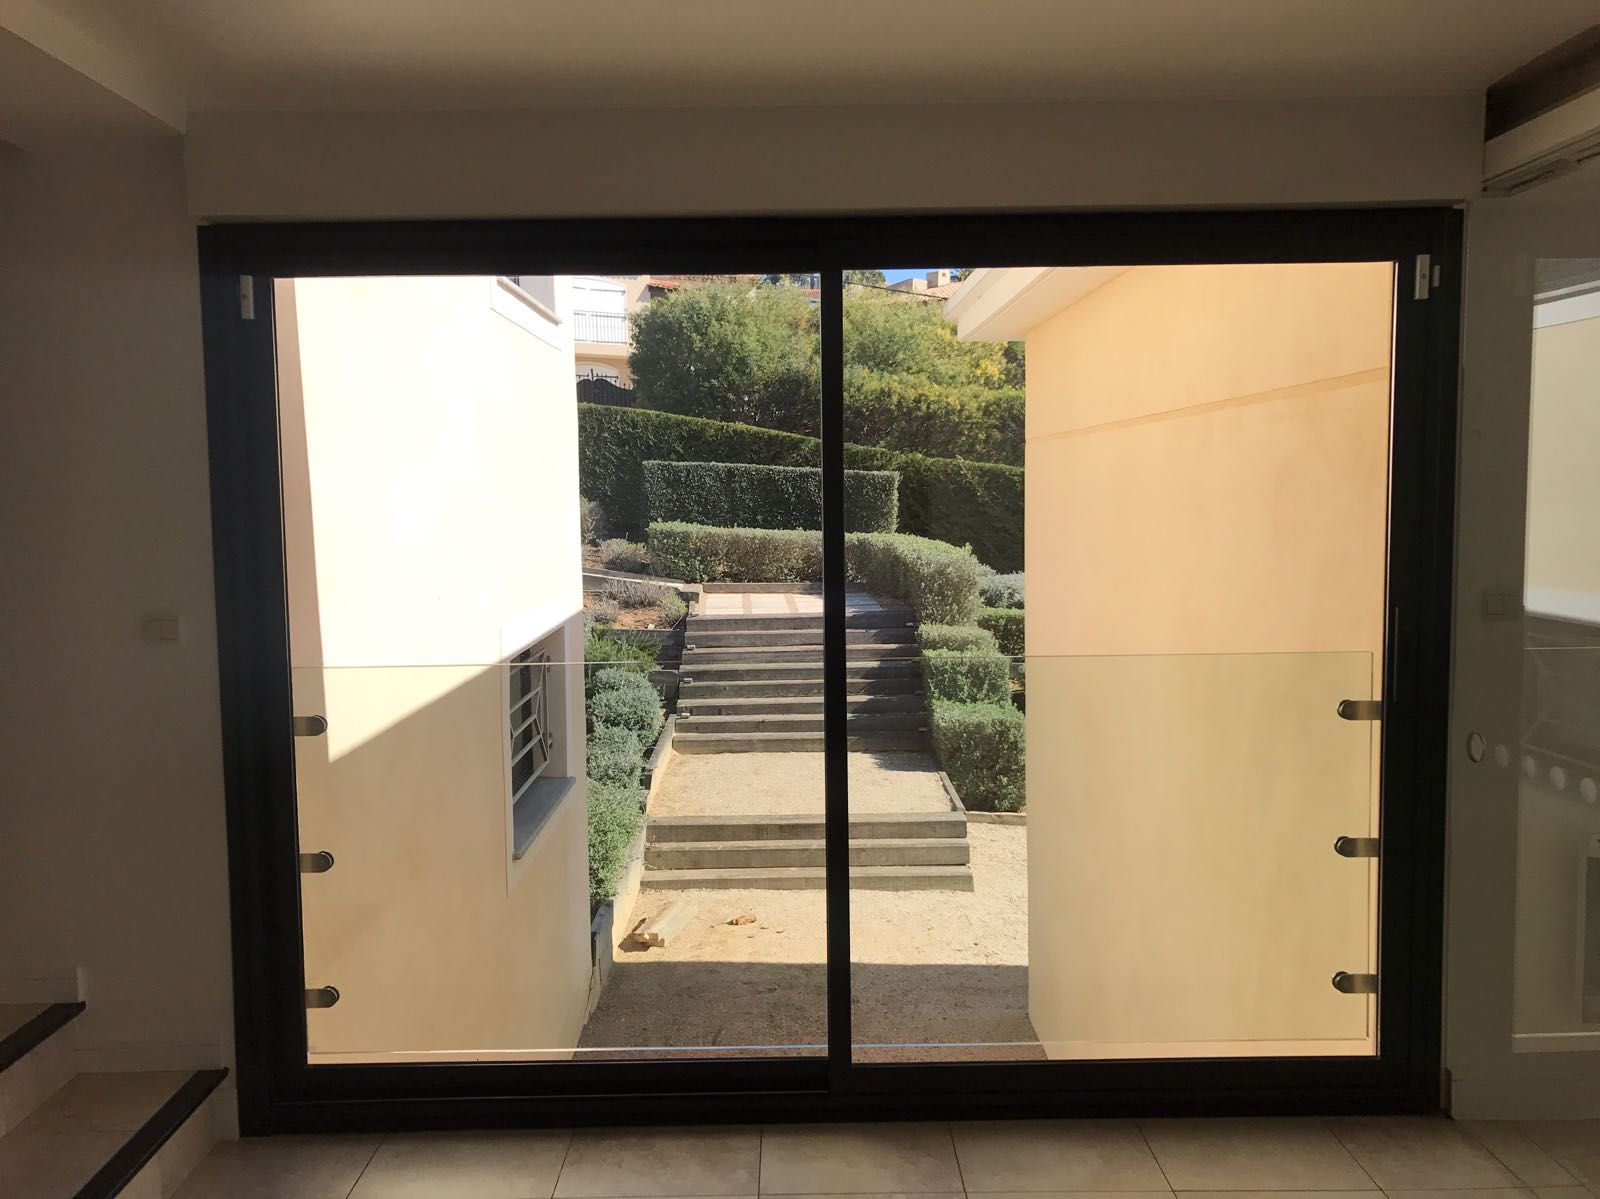 Julitette Balcony Frameless Glass Installation